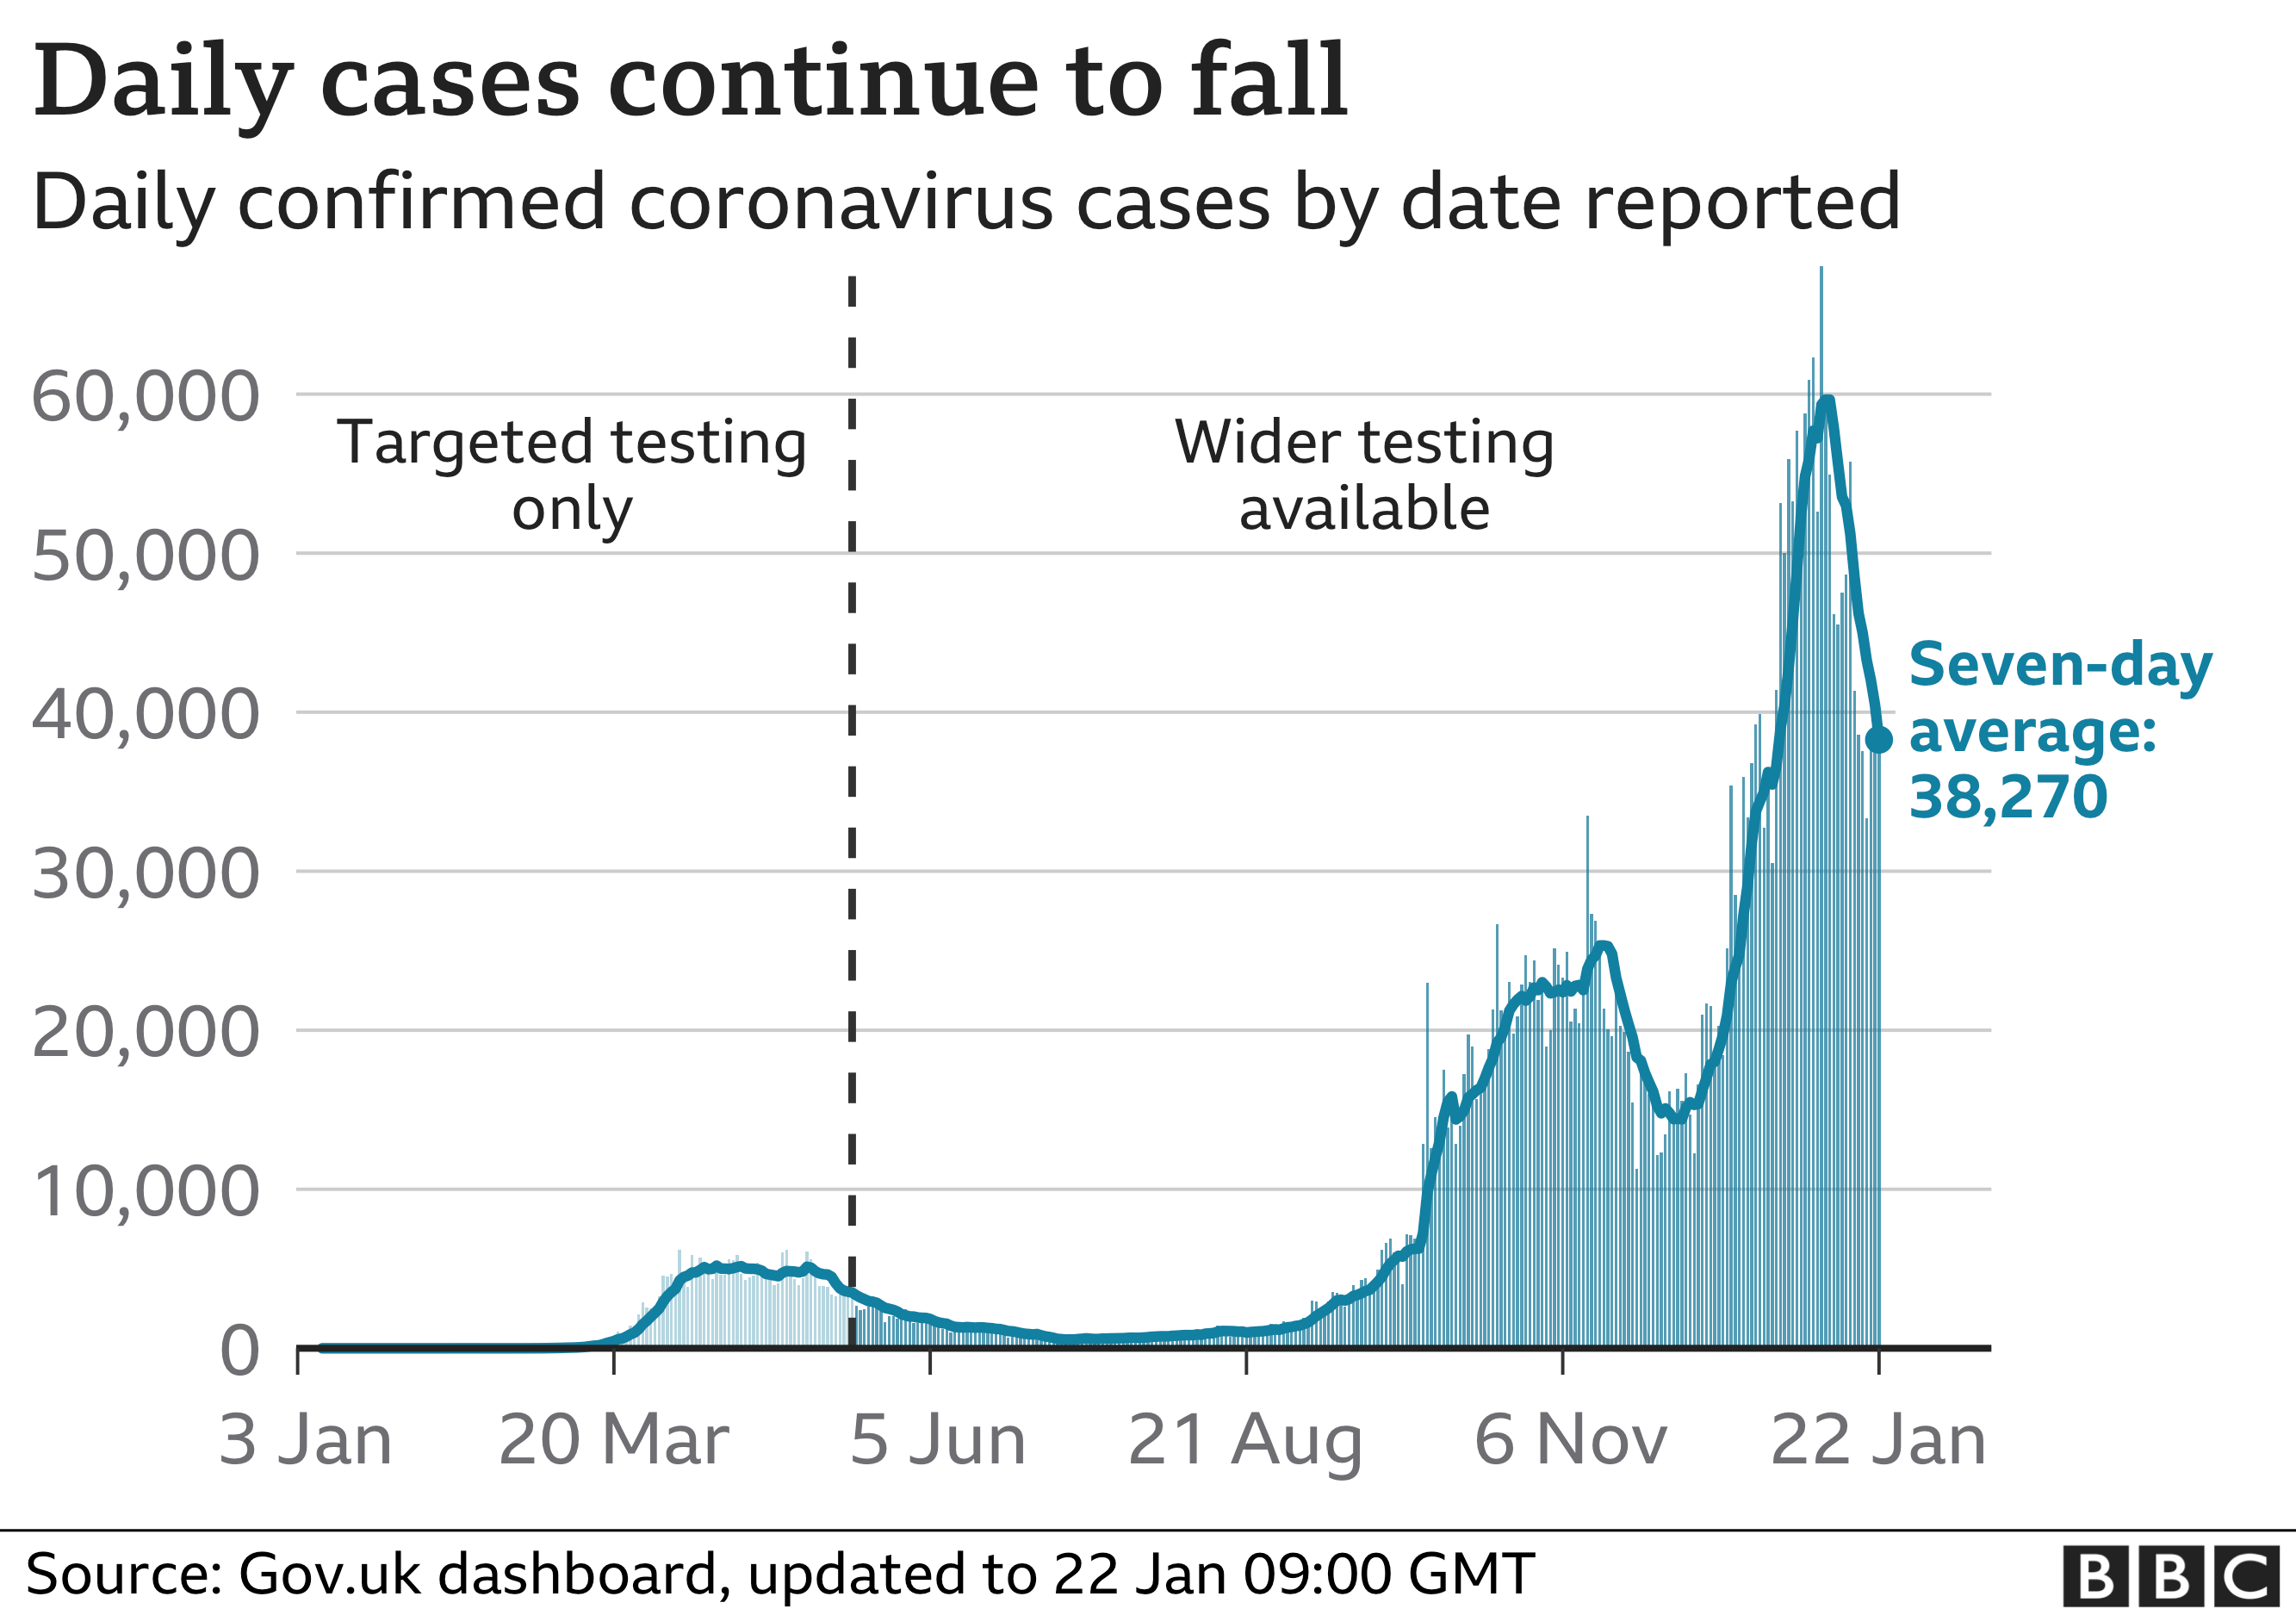 Chart shows daily confirmed cases have started falling